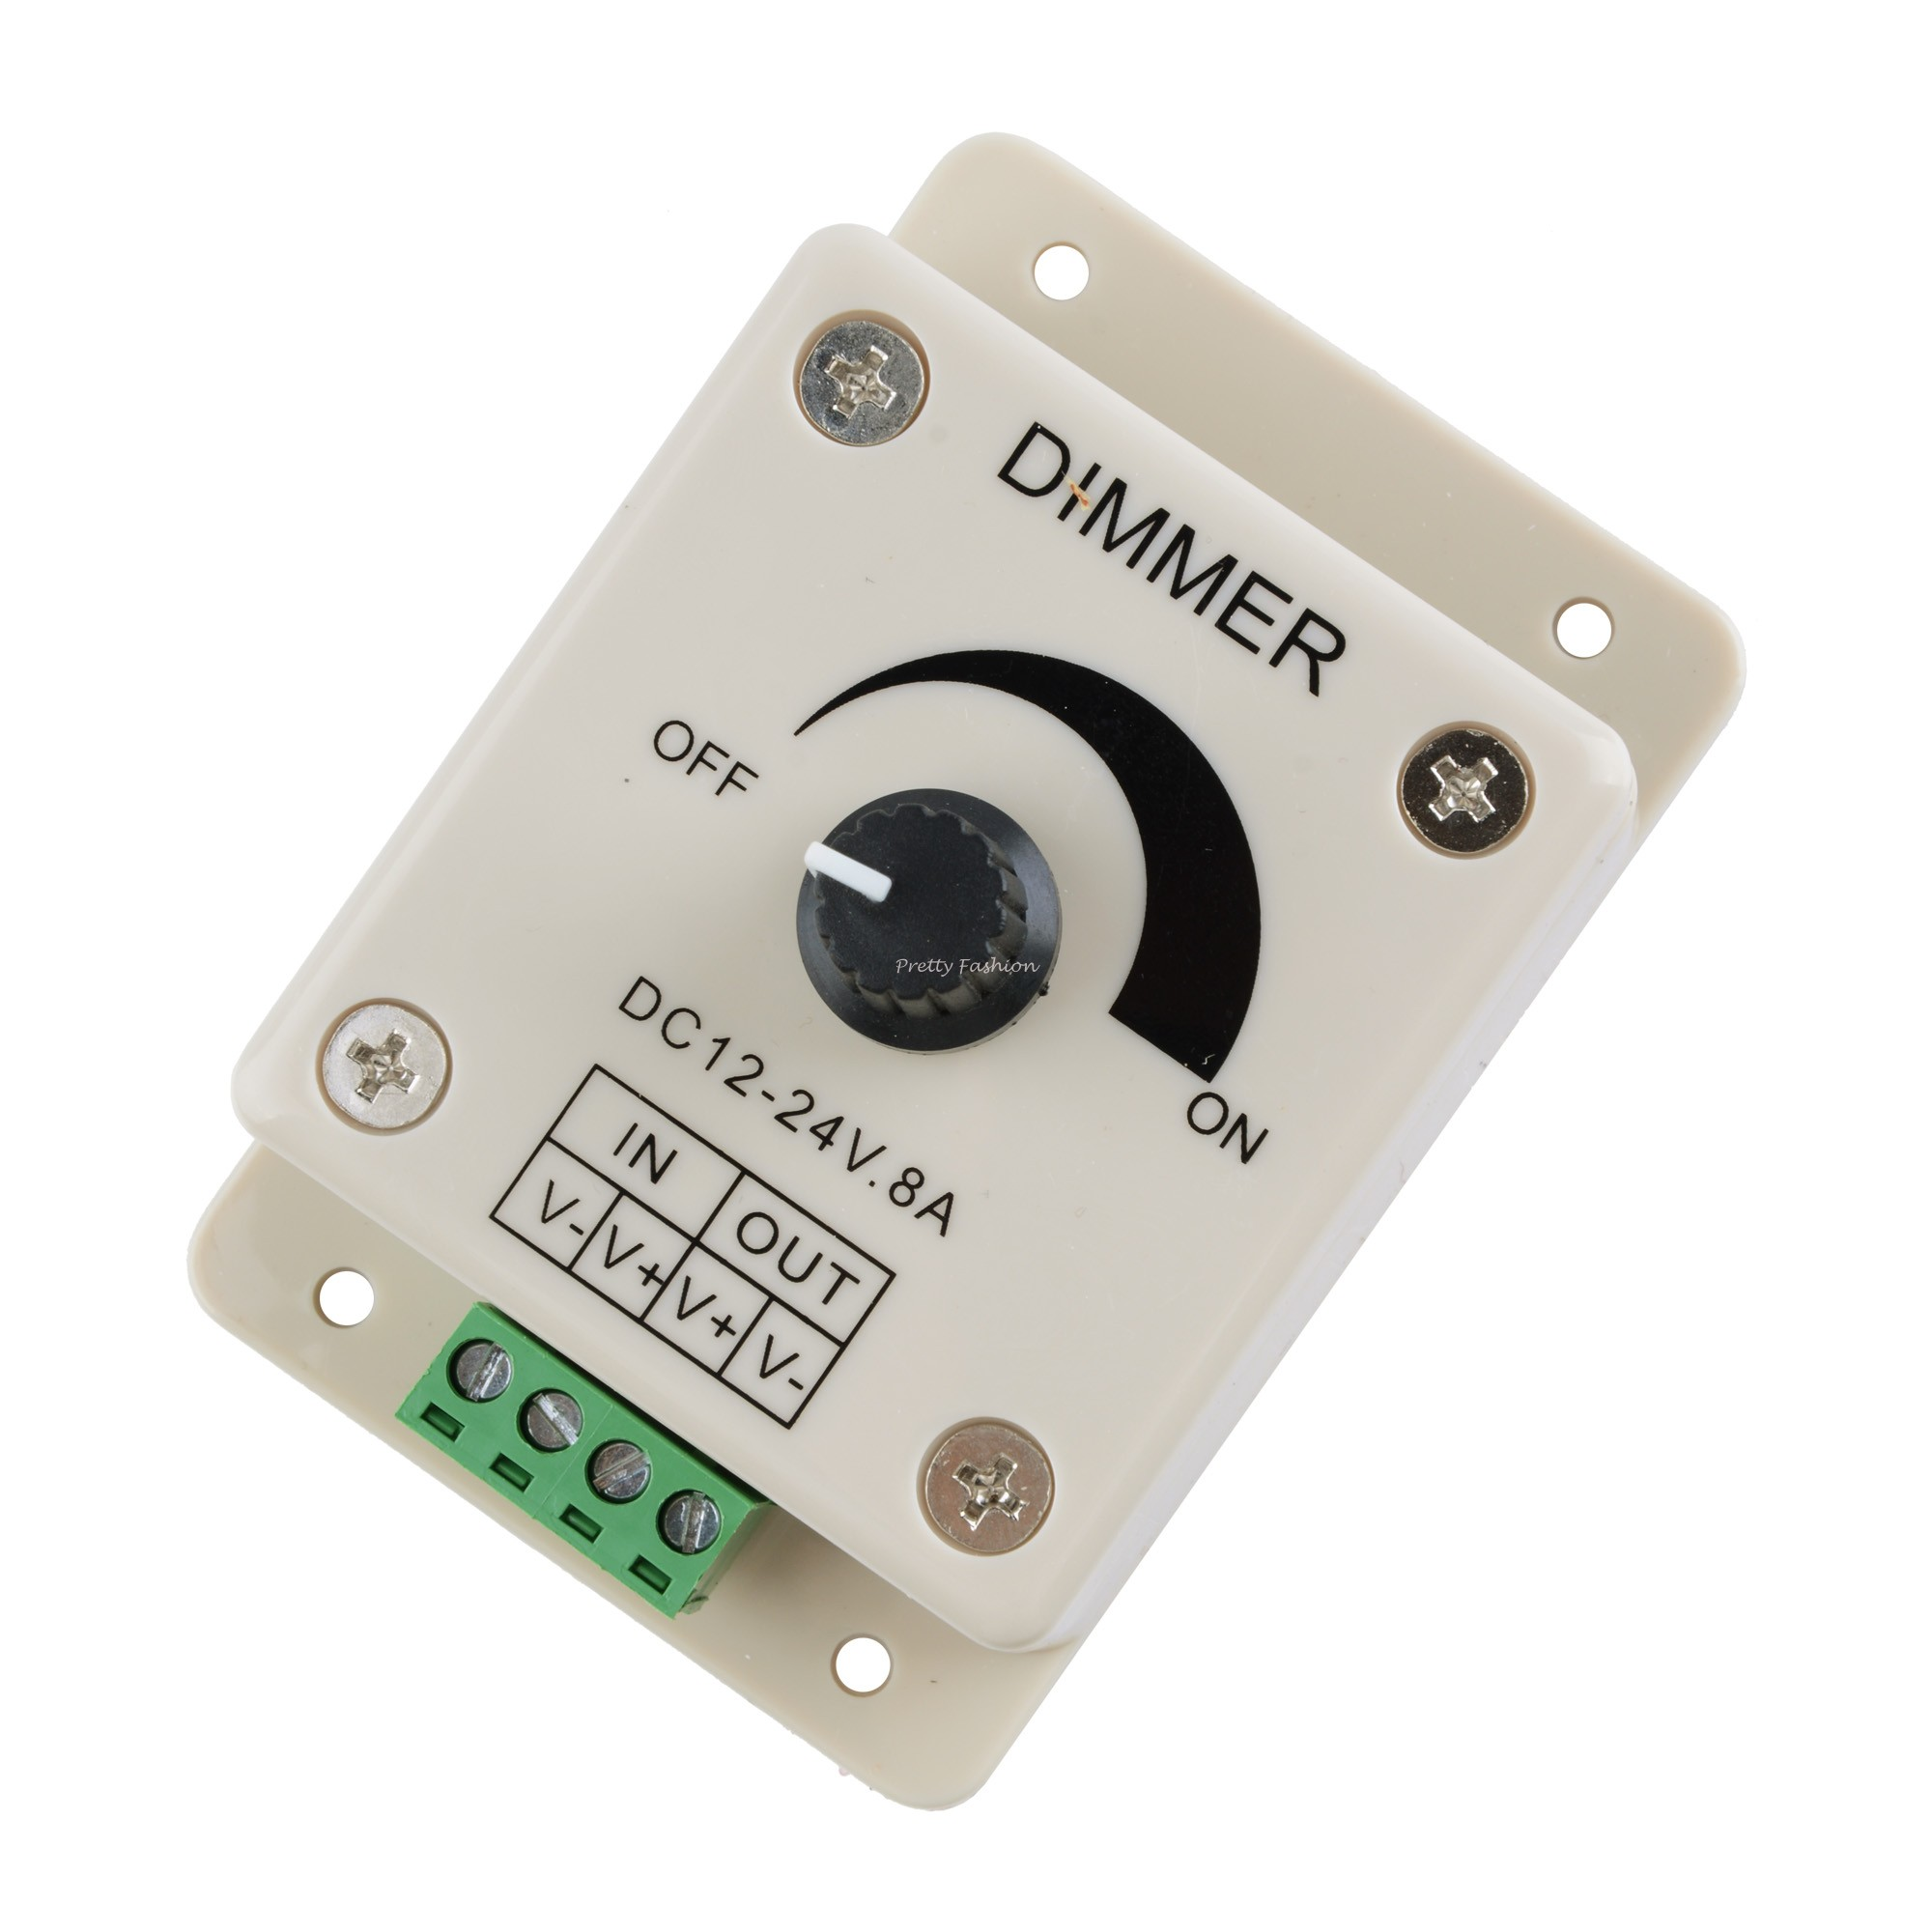 led driver dimmers for dimmable led lighting lamp 34 in dimmers. Black Bedroom Furniture Sets. Home Design Ideas